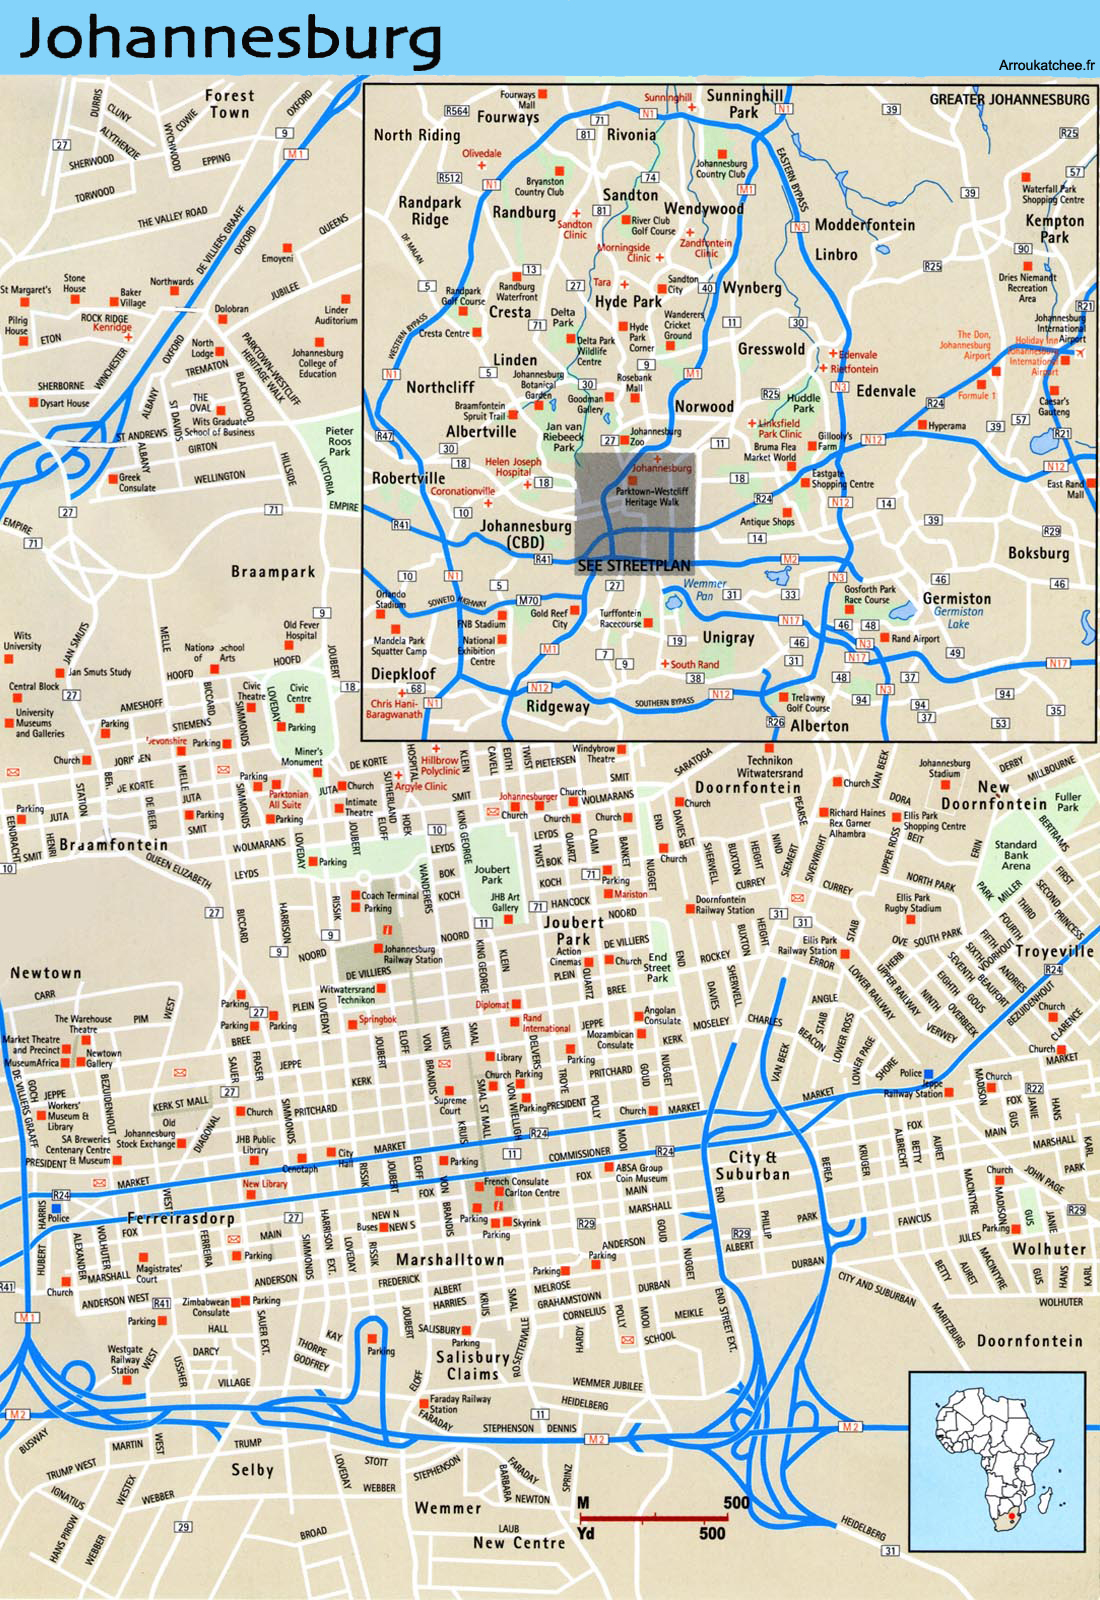 Johannesburg street map